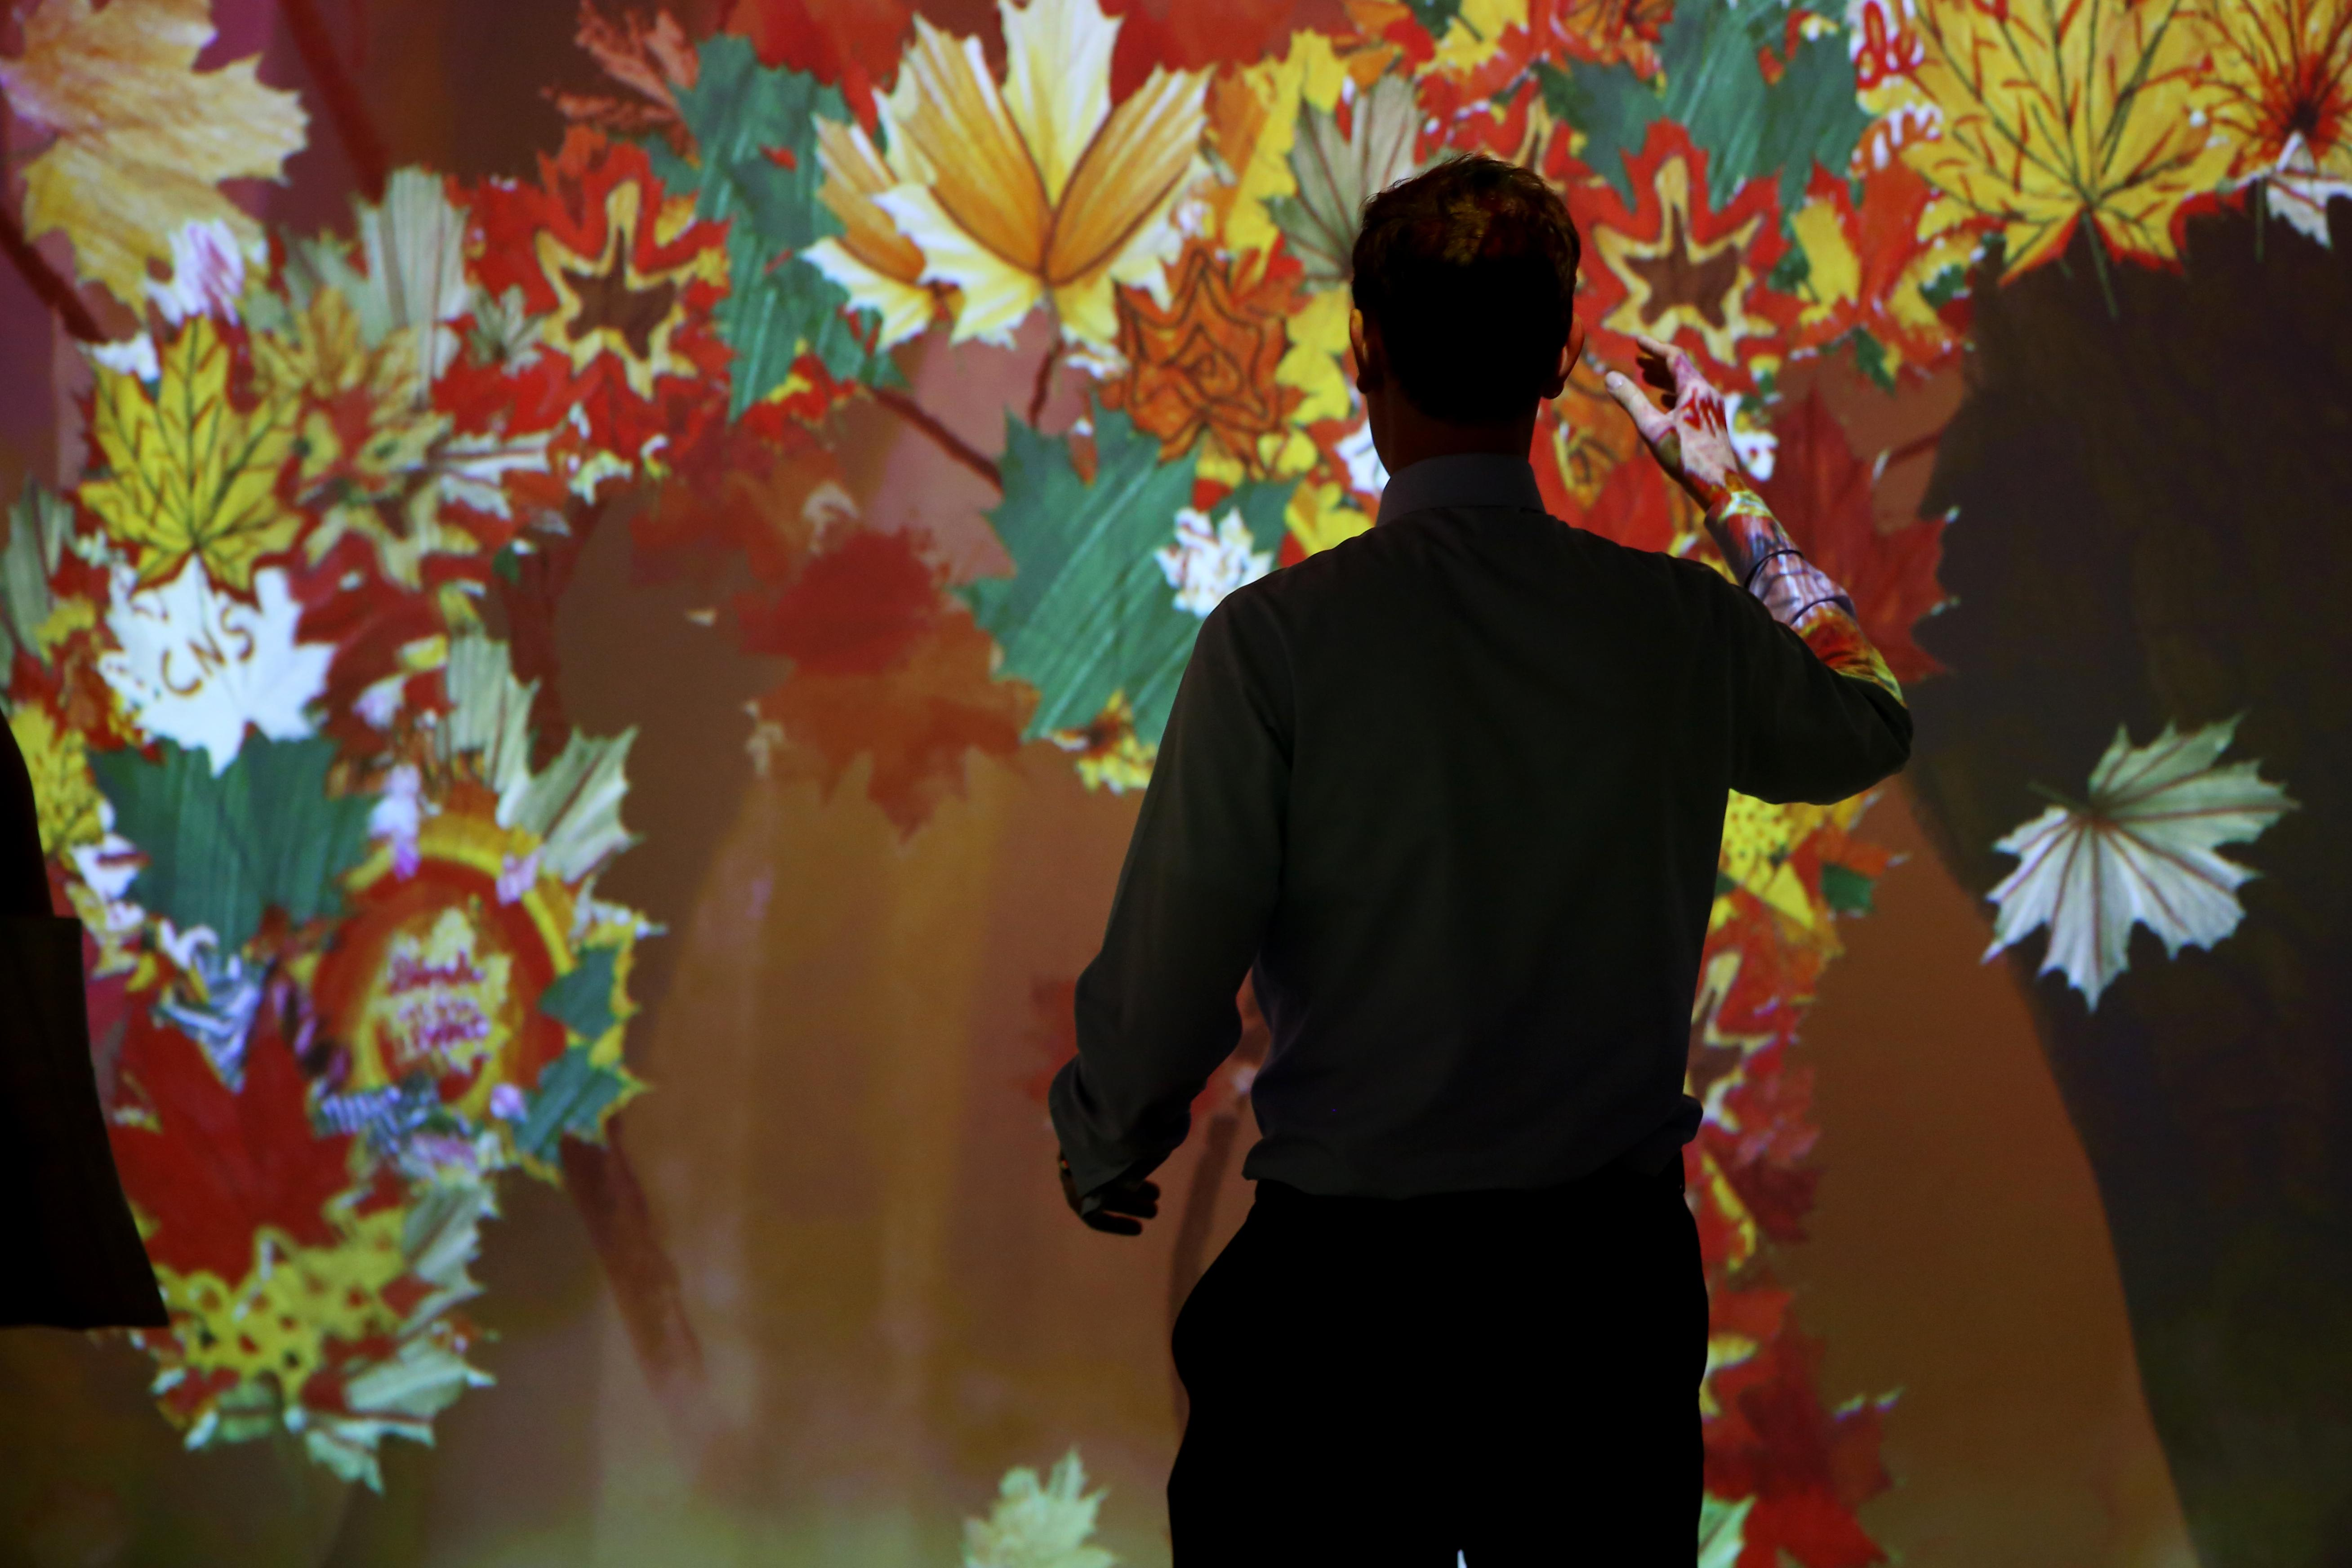 The seasons are about to change but Artechouse is getting a jump on fall with their newest interactive exhibit - Spirit of Autumn. Although this exhibition is smaller than years past, visitors can play with motion and sound-sensitive visual displays, try out at augmented reality cocktail and even contribute to the art by designing a leaf that will be digitally incorporated for future guests. The exhibit runs from Oct. 1 - Nov. 5. (Amanda Andrade-Rhoades/DC Refined)